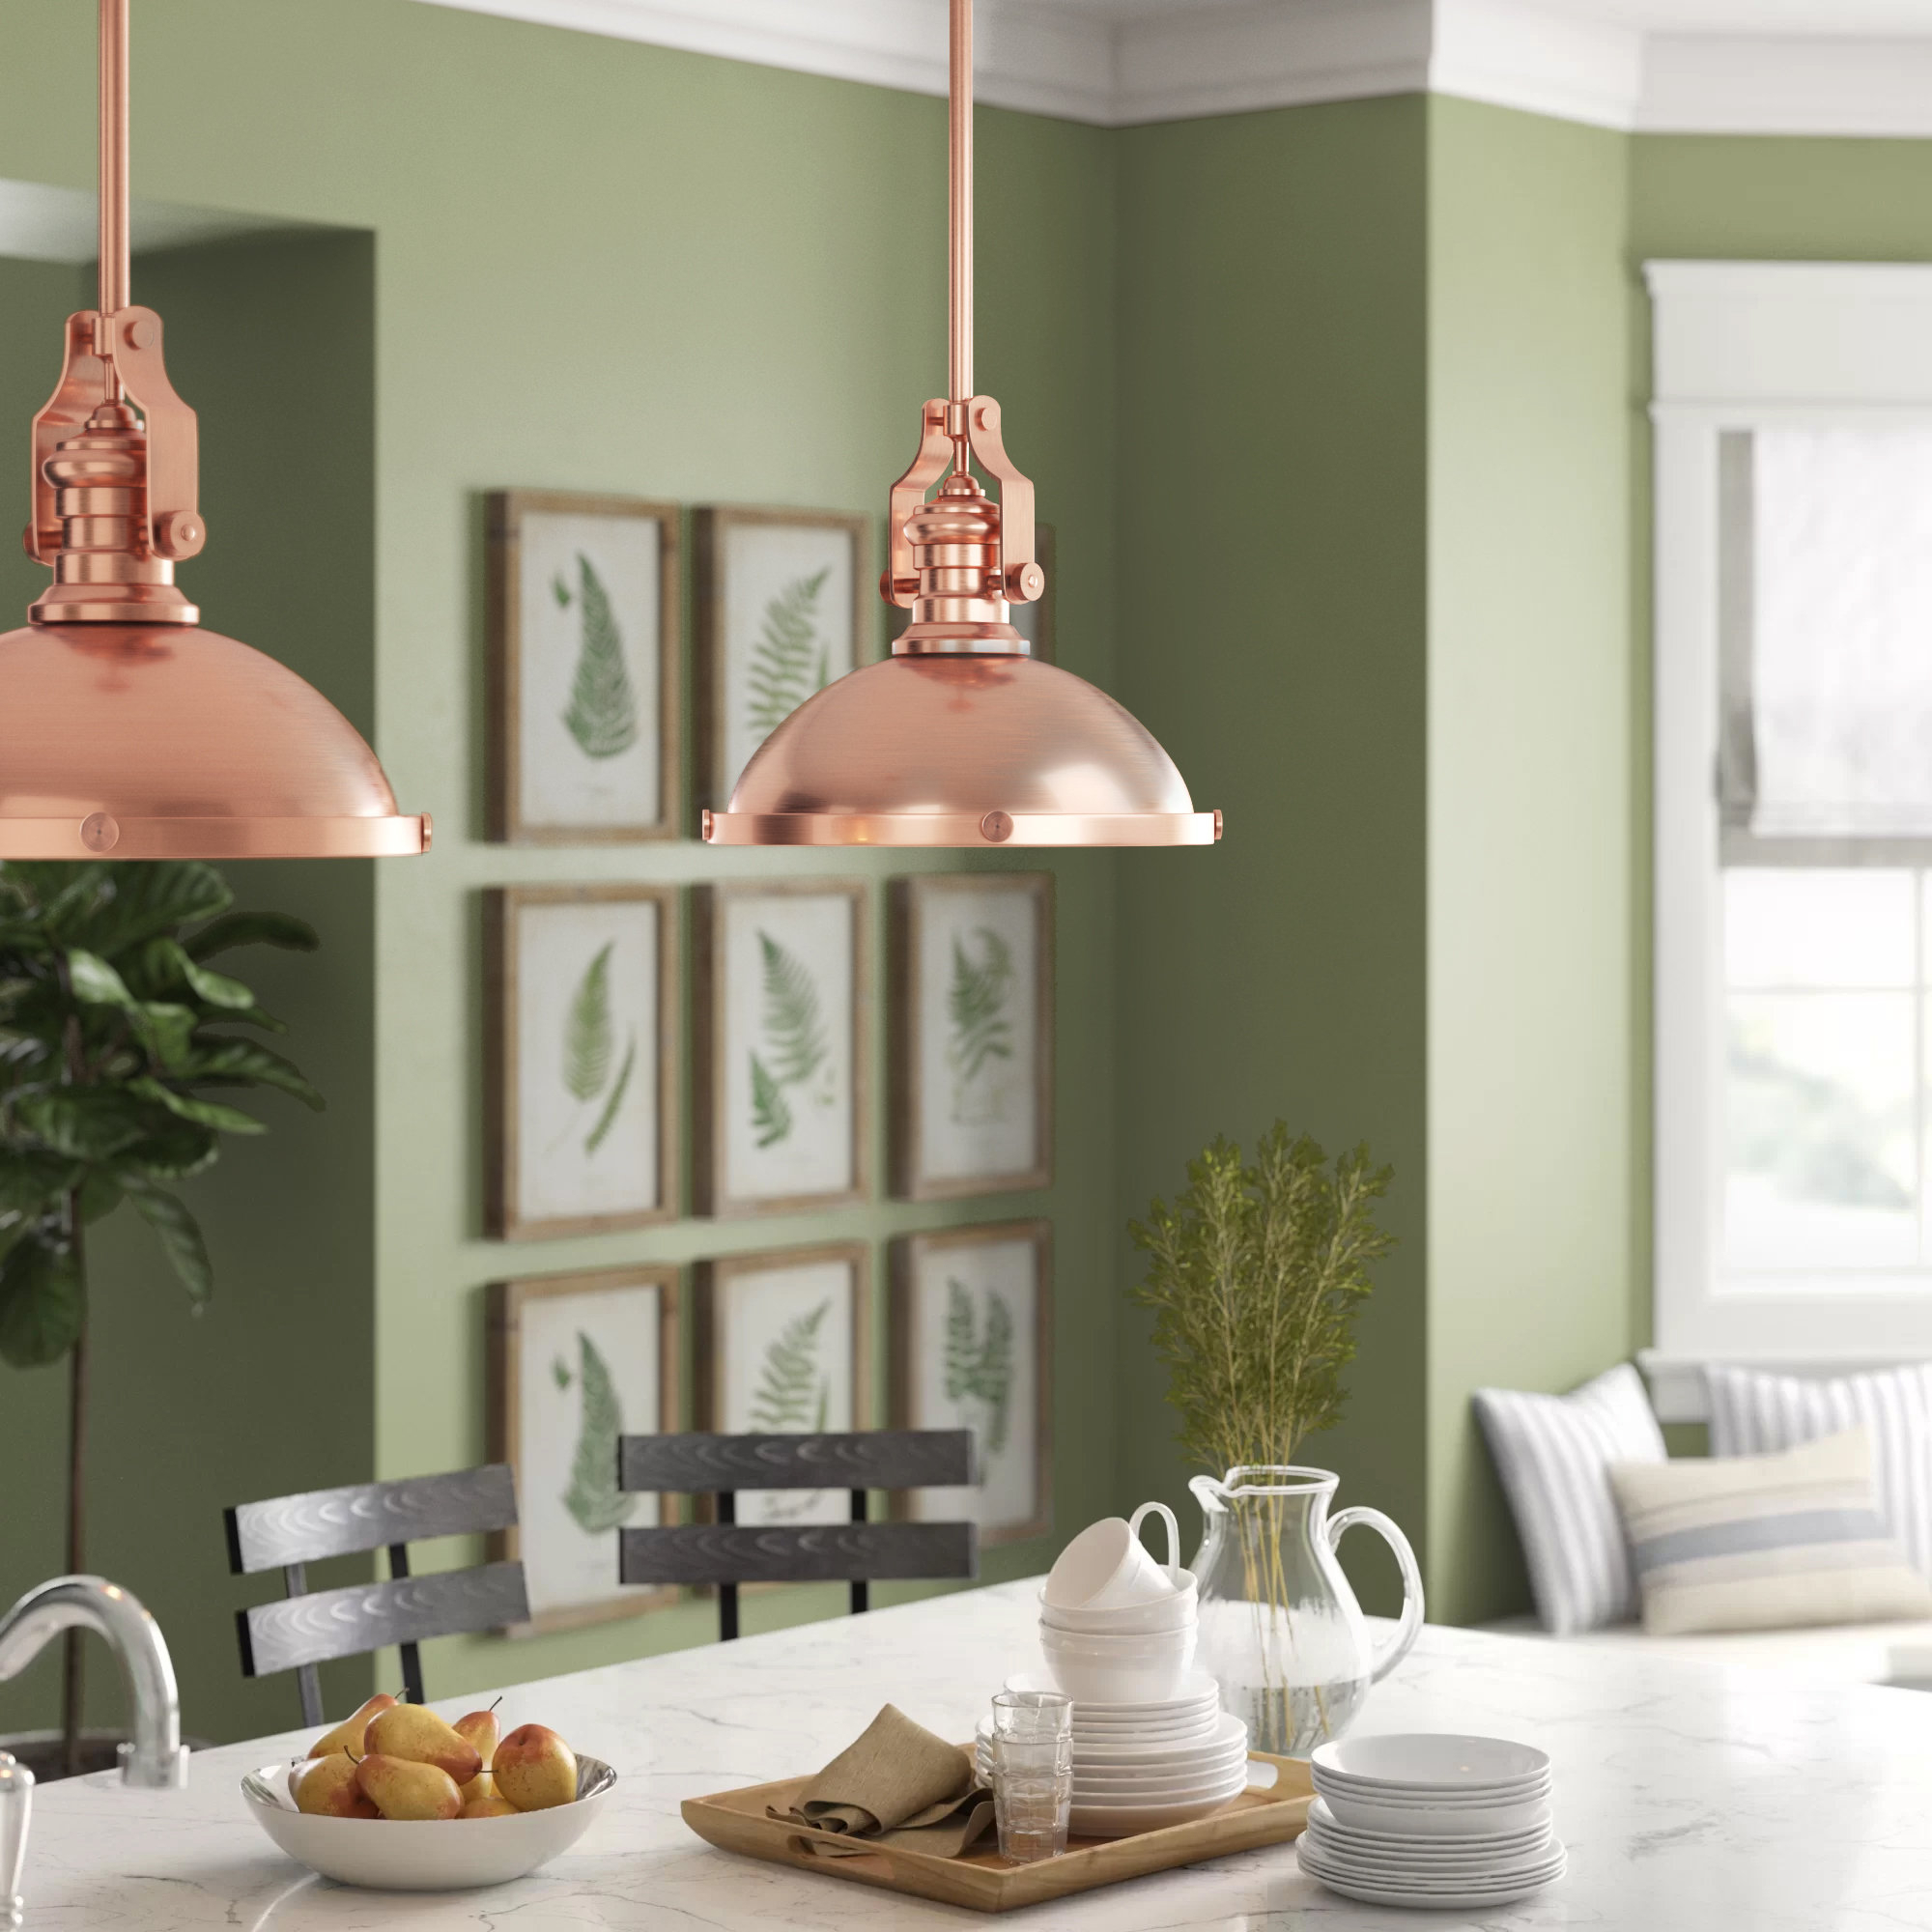 1 Light Single Pendant Lighting You'll Love In 2019 | Wayfair Pertaining To Willems 1 Light Single Drum Pendants (Photo 12 of 30)